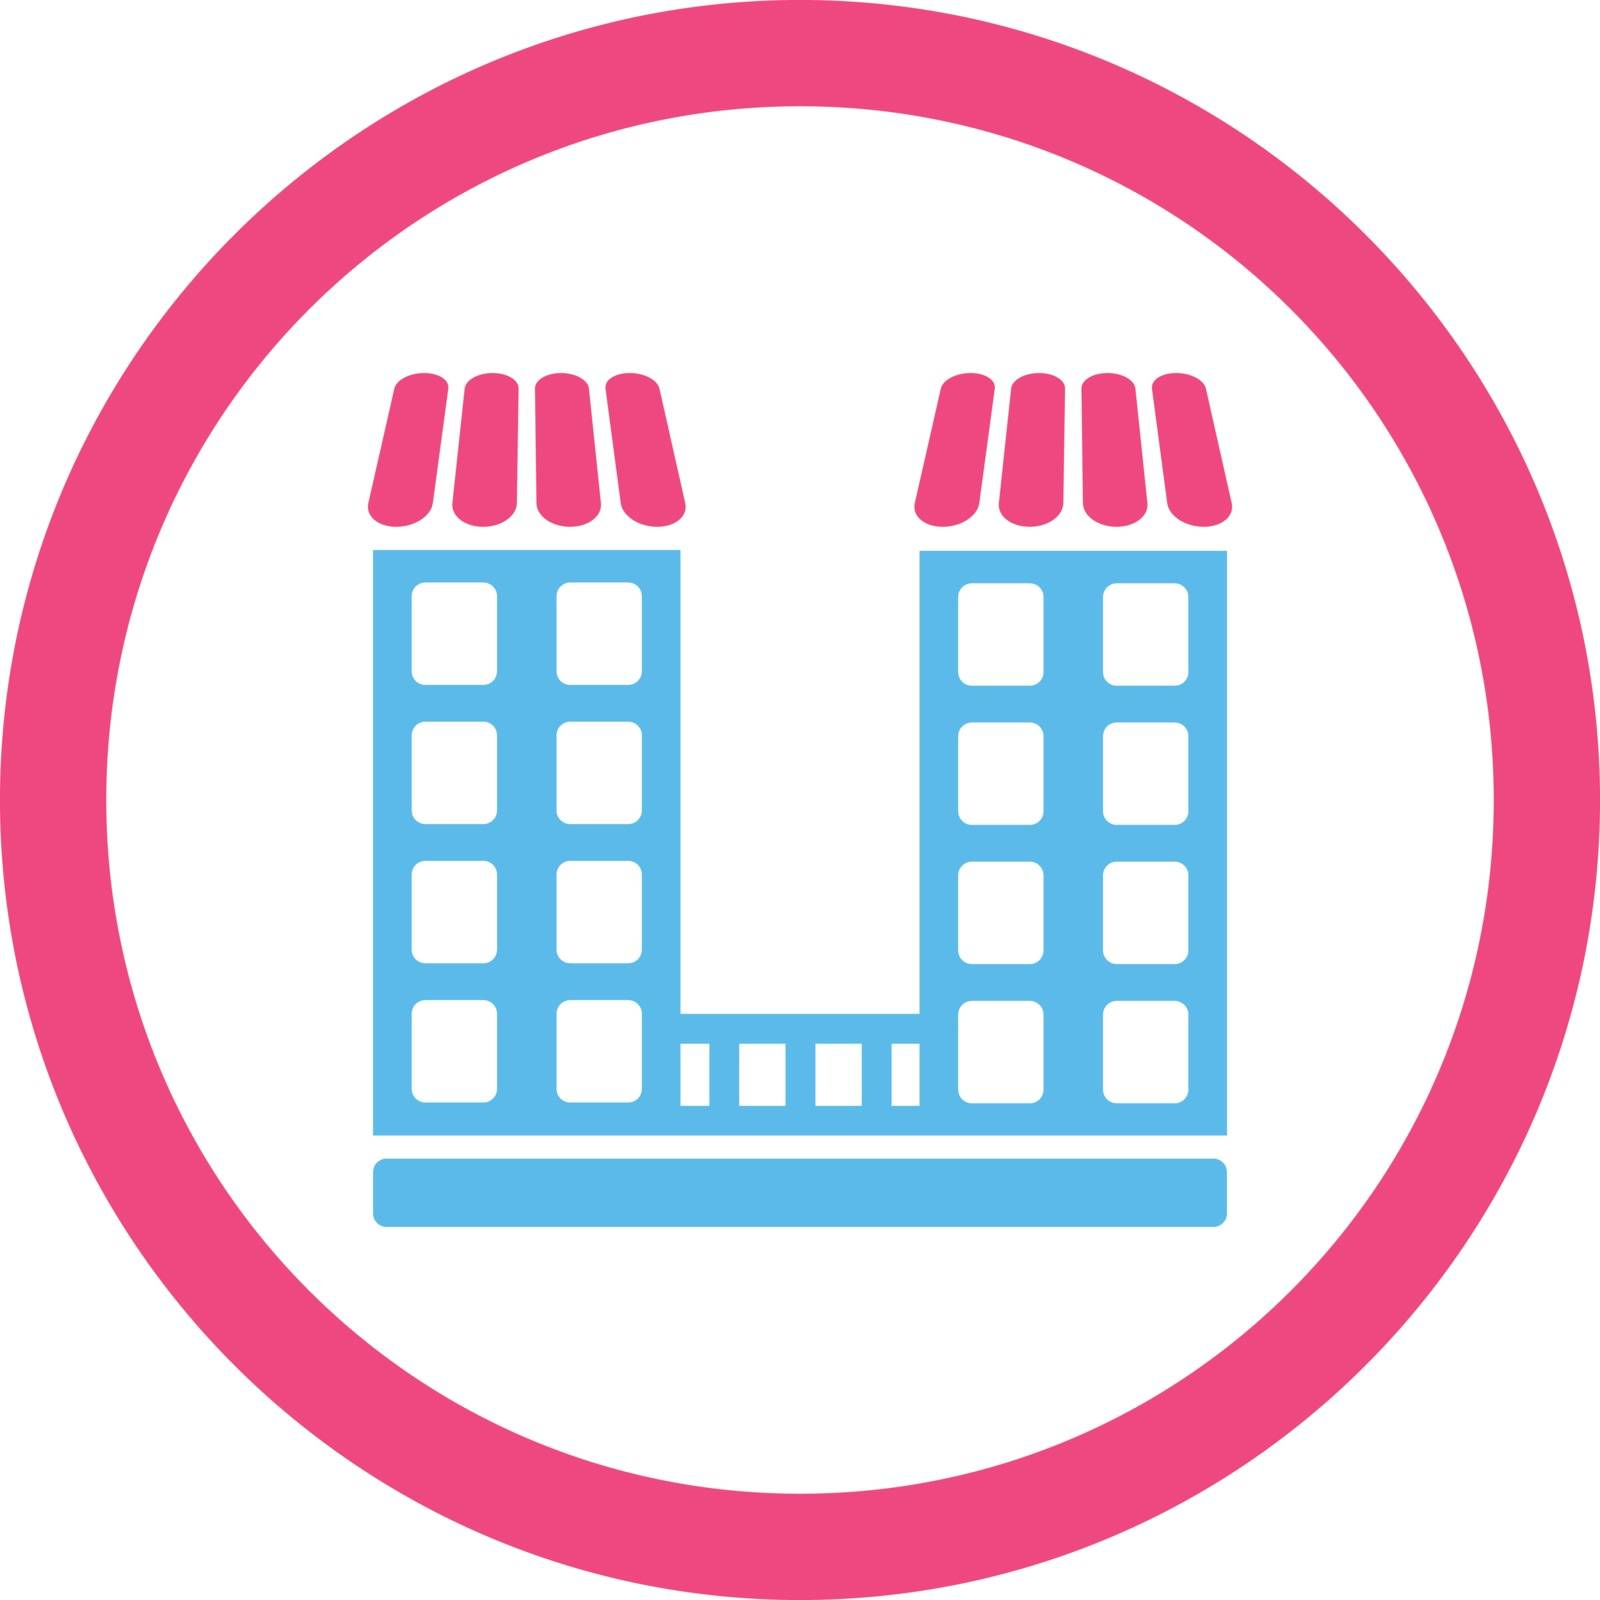 Company vector icon. This flat rounded symbol uses pink and blue colors and isolated on a white background.